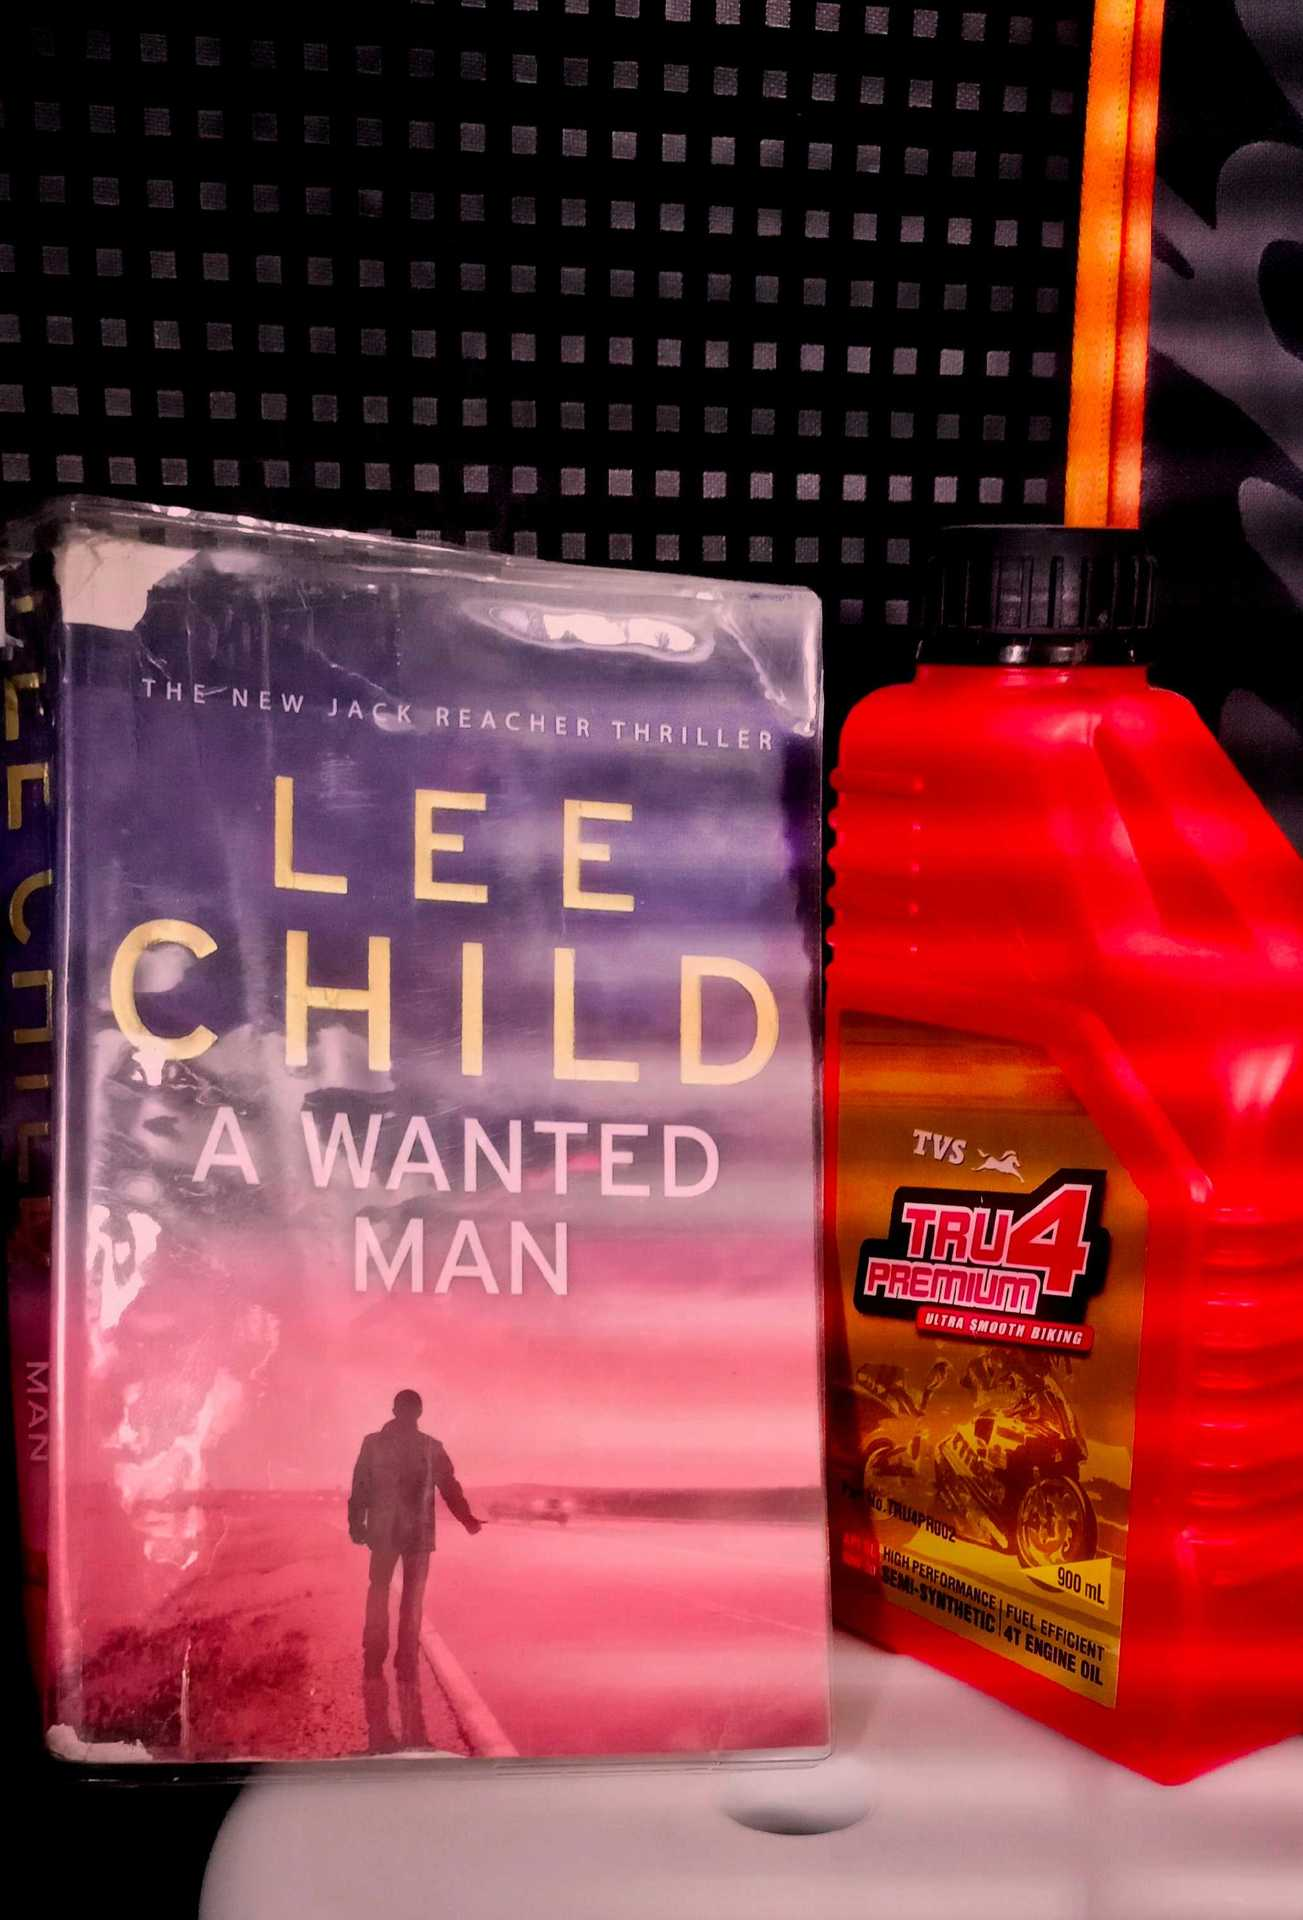 A Wanted Man- Lee Child image